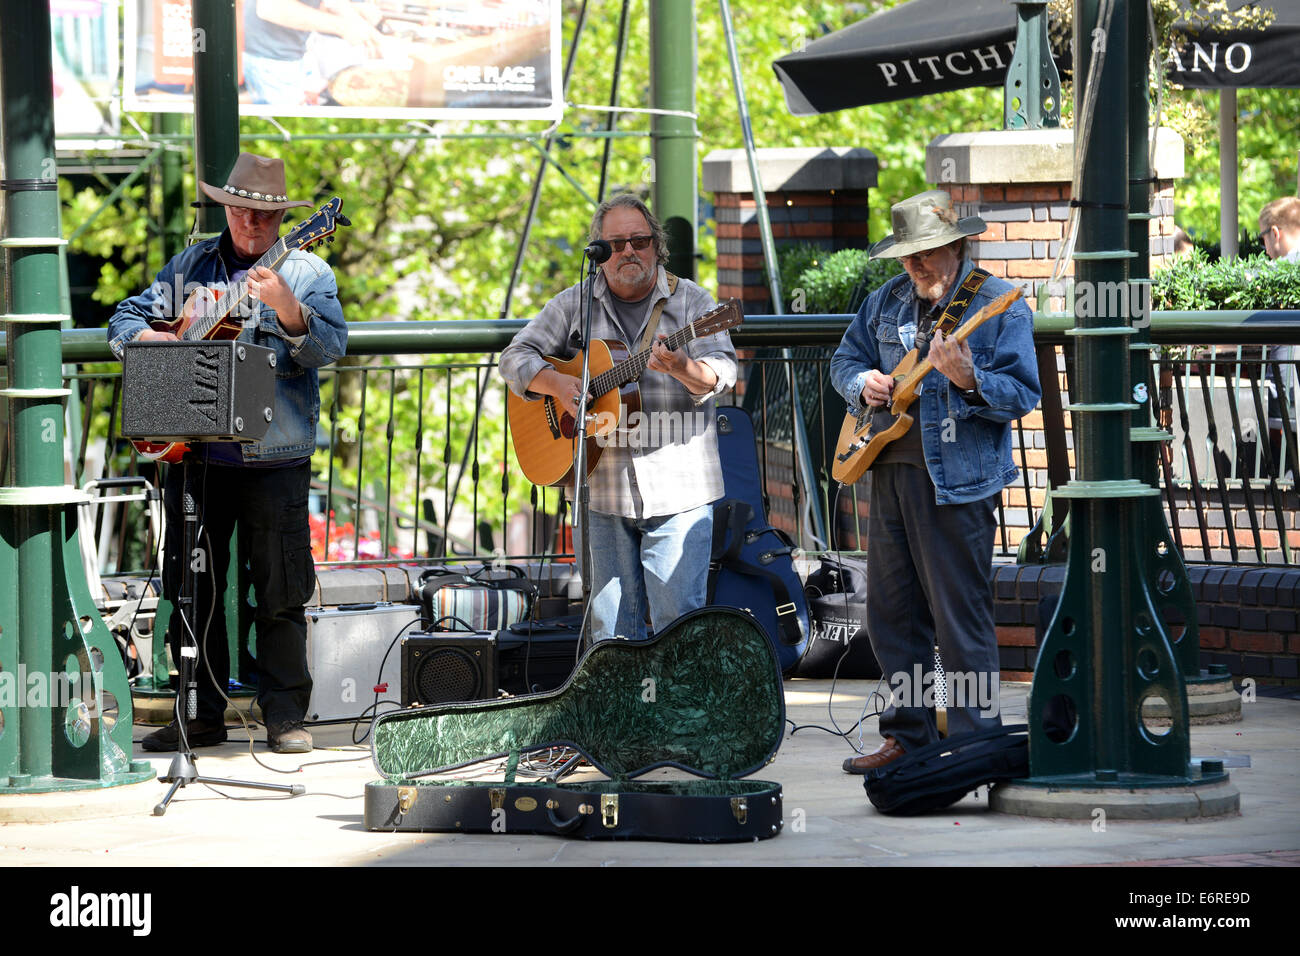 Band musicians busking buskers in Brindley Place Birmingham Uk - Stock Image